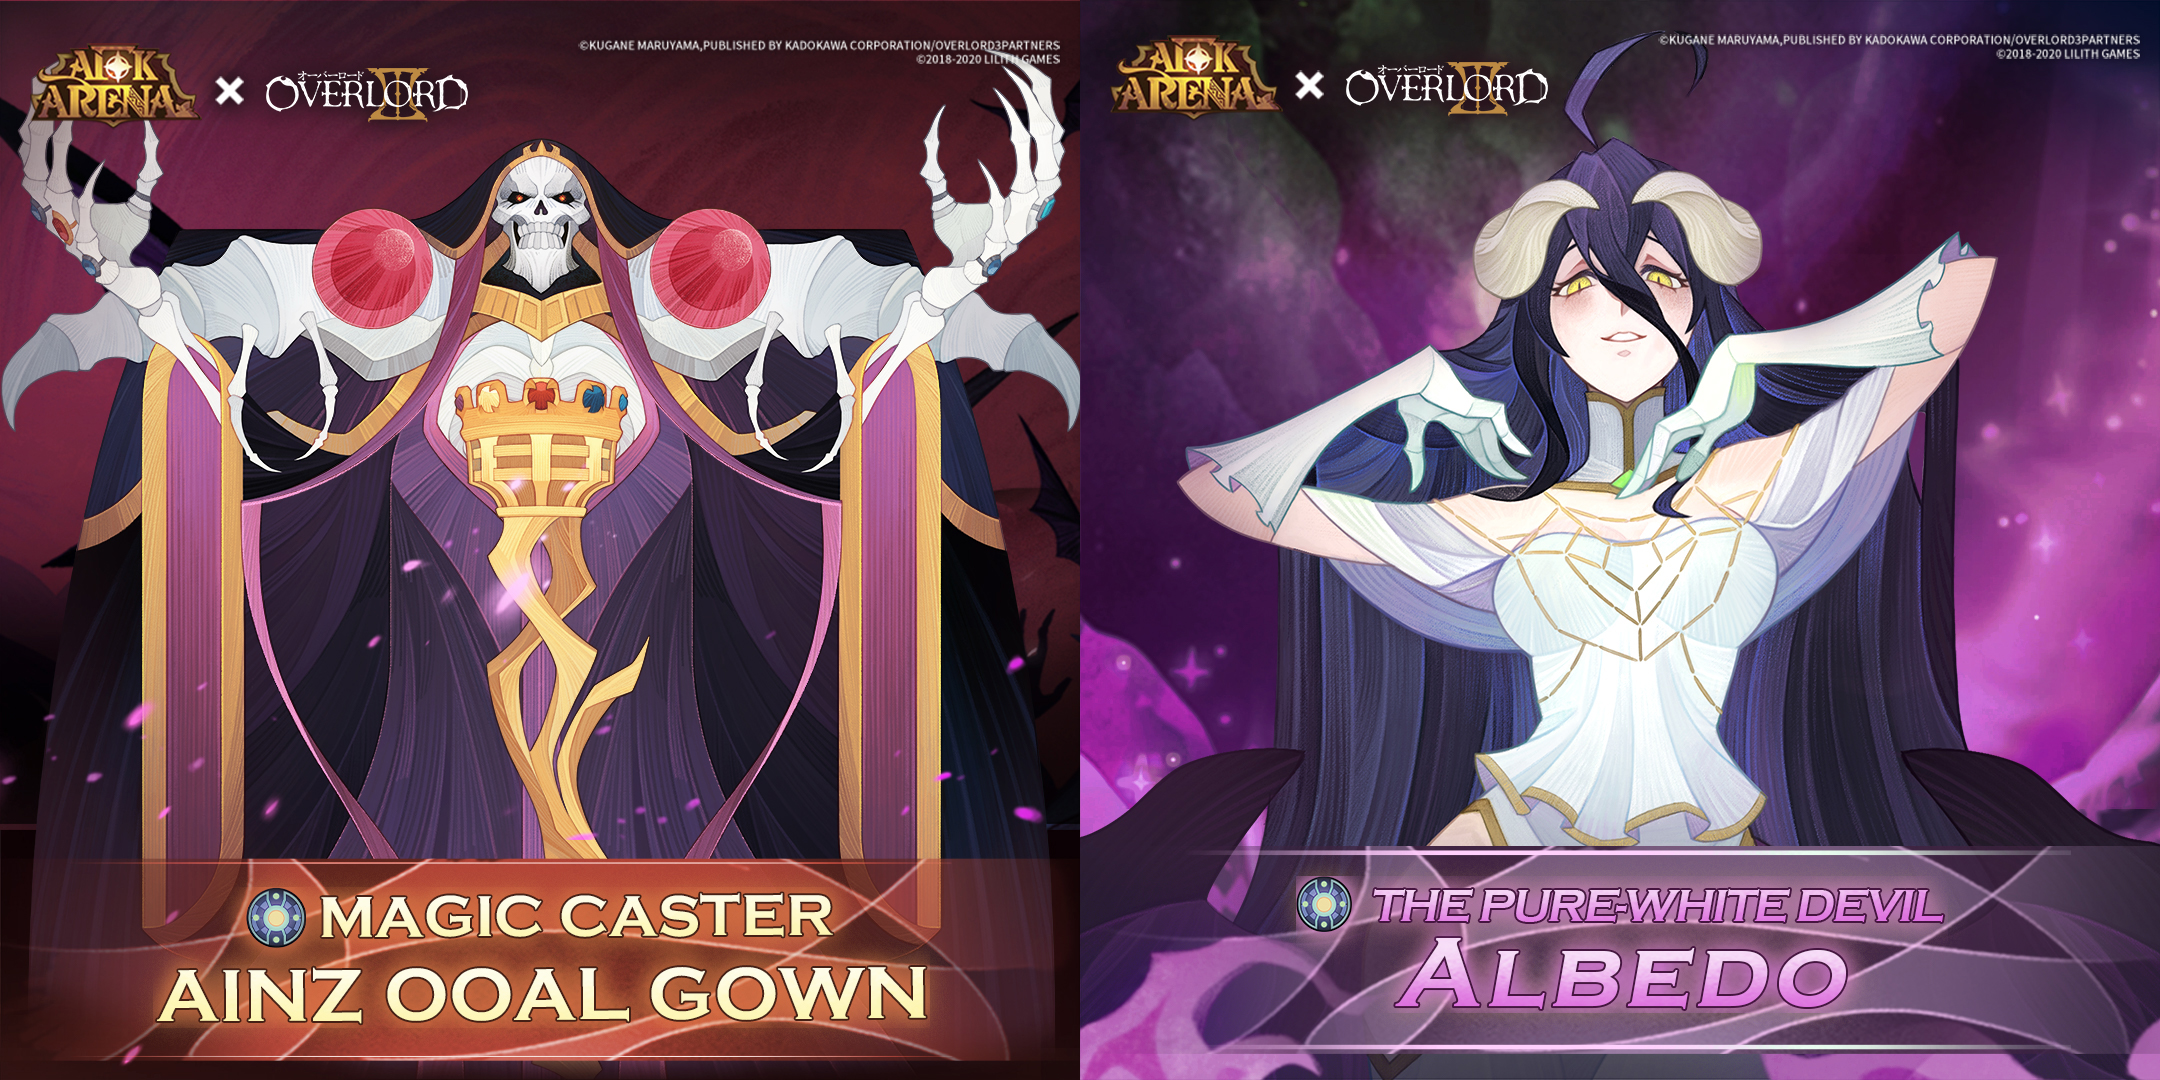 AFK Arena's Halloween Event Has a Partnership With Anime Overlord, Two New Heroes Releasing As Part of Crossover